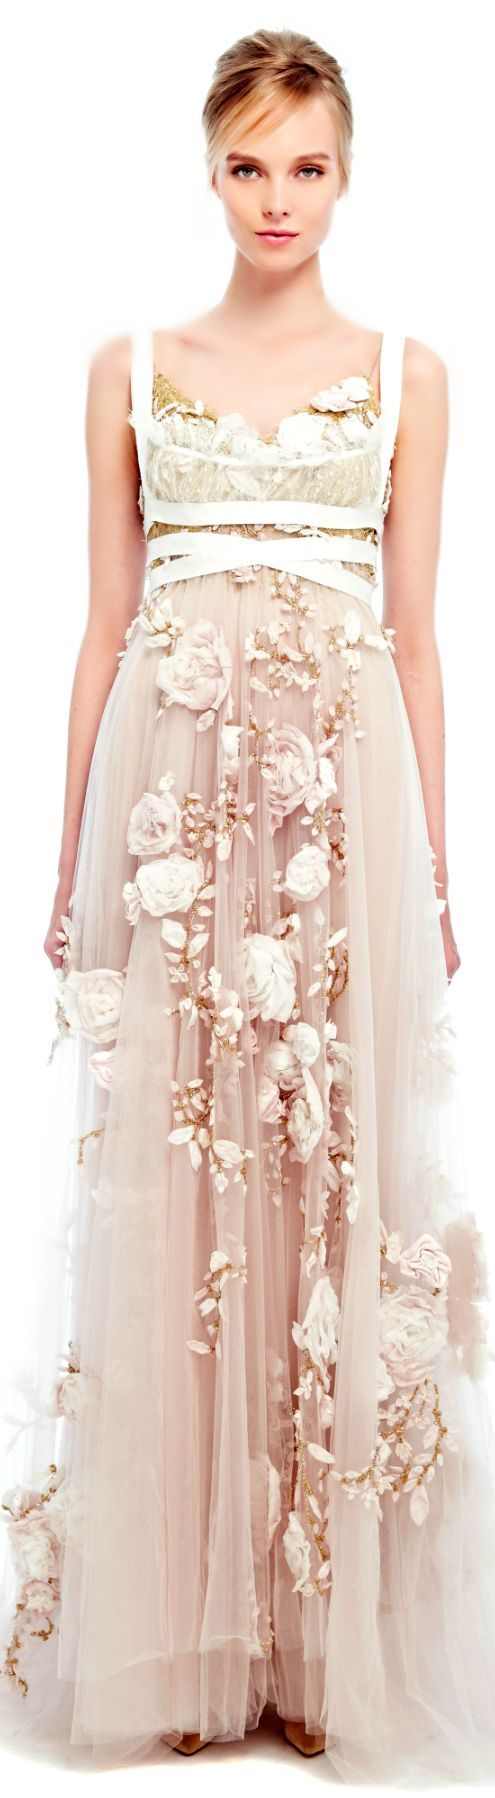 Gowns and perfumes part 4 (Page 1) — Fashion and Style — Fragrantica ...